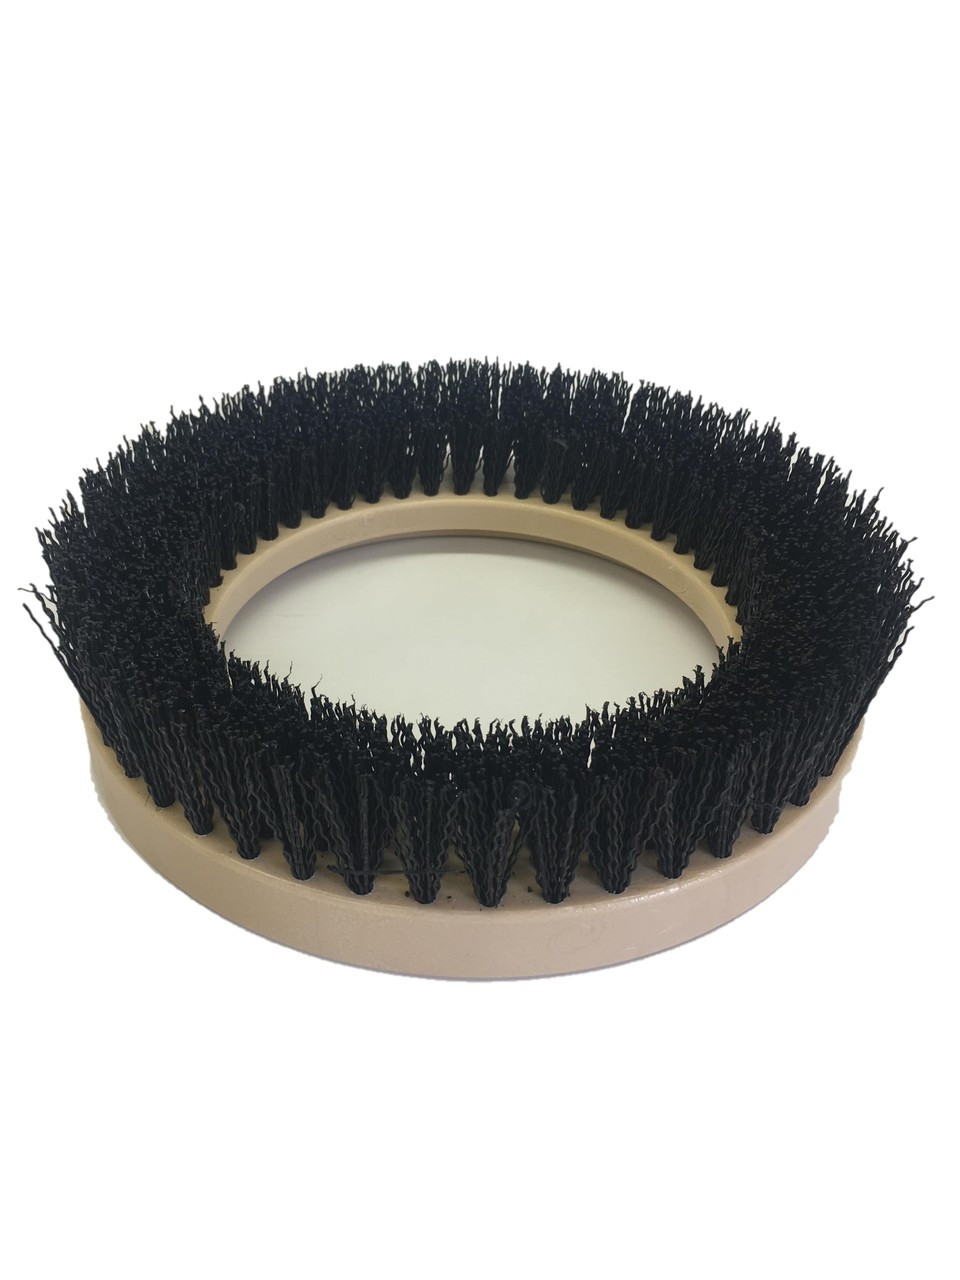 "9"" Flat Coarse Brush, Outside Bevel, PolyPro, #3 brush alone"